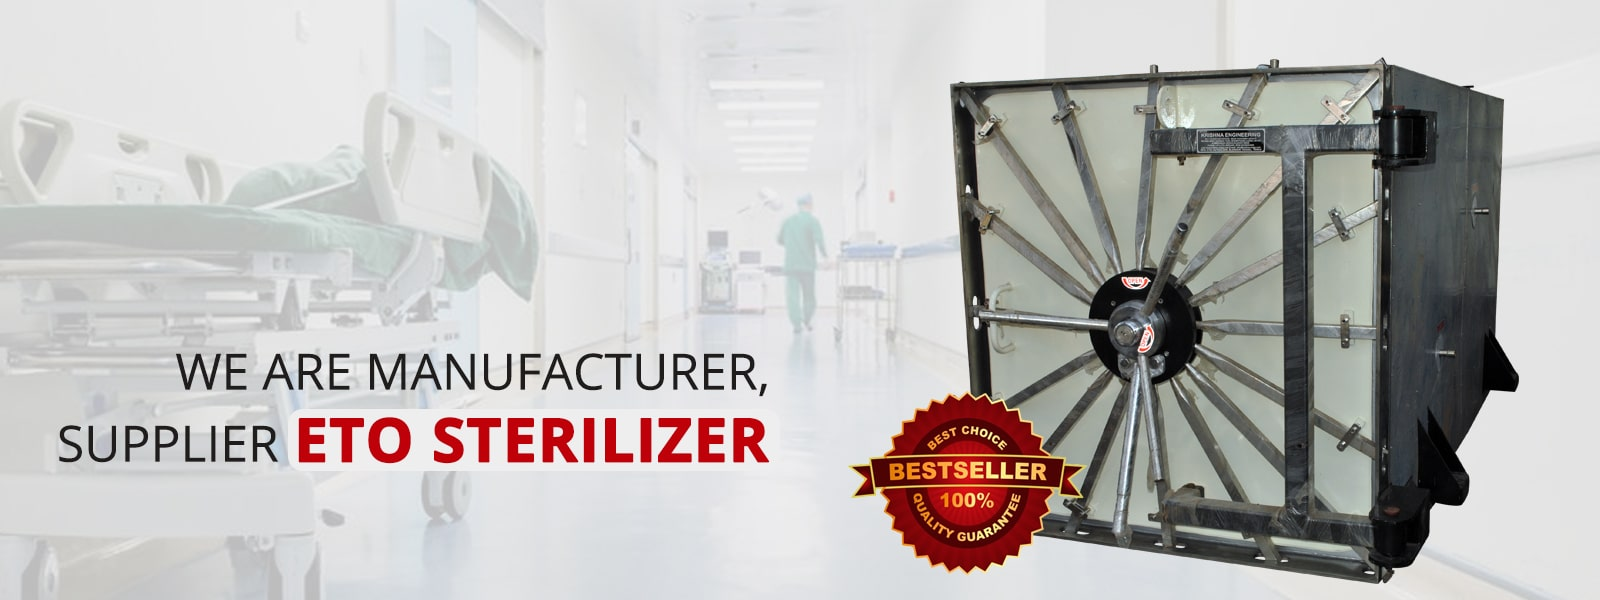 We even make sure that ETO Sterilizer have the necessary safety feature along with good performance ratio.